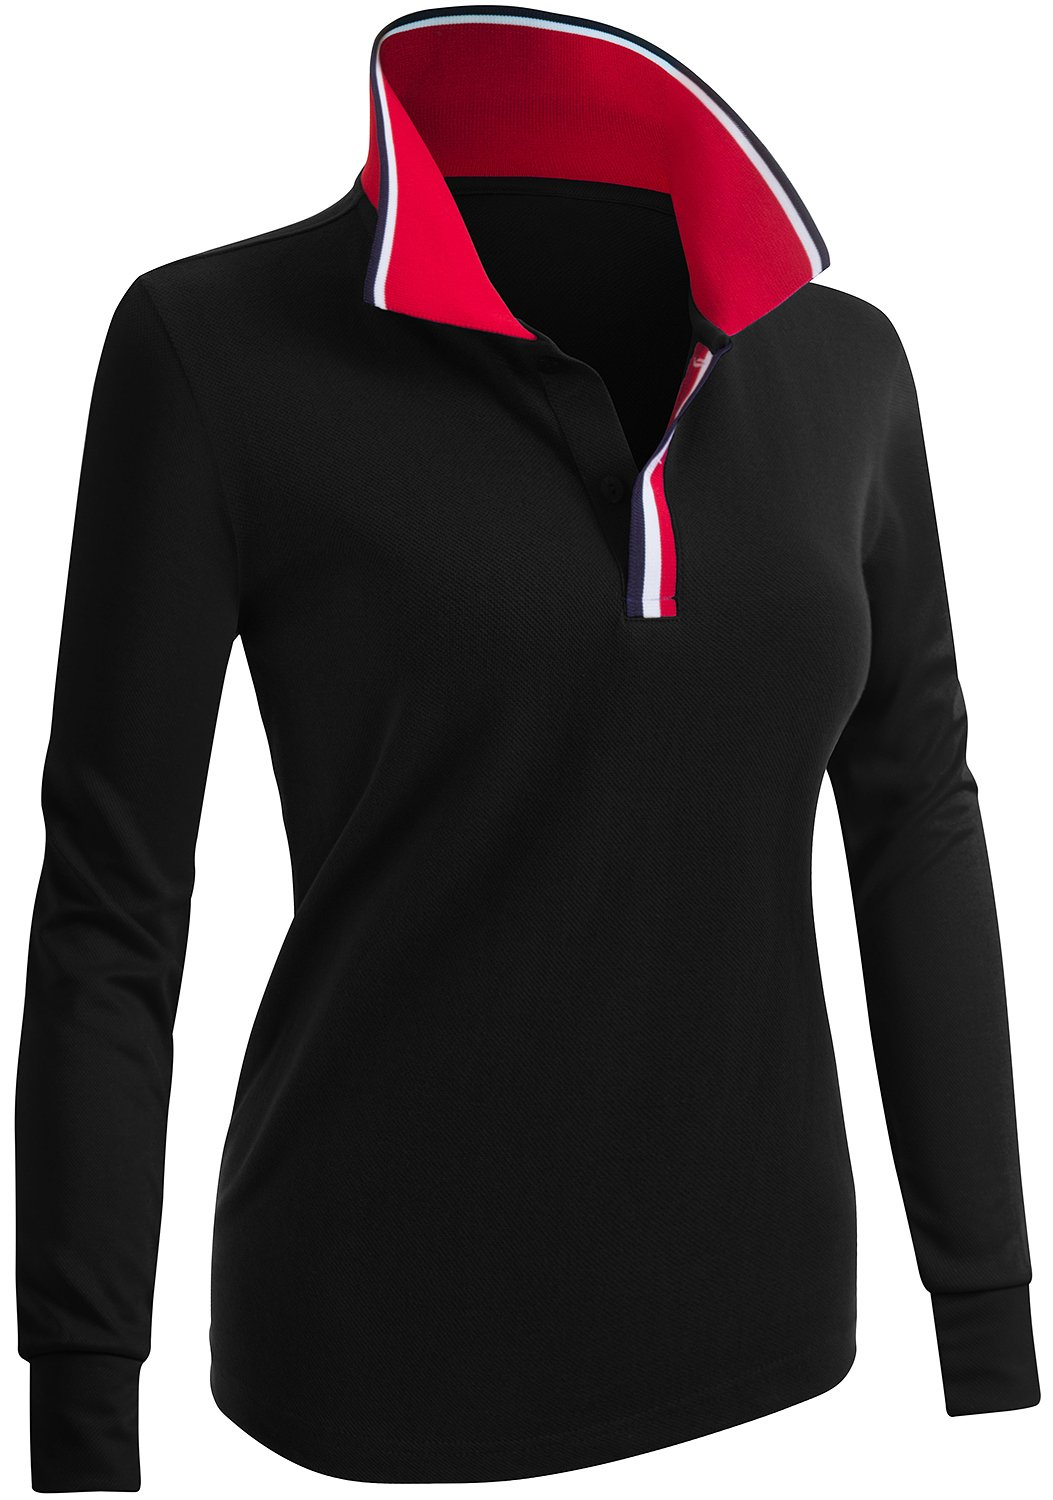 CLOVERY Women's Basic Solid Long Sleeve Basic Polo Top Black US S/Tag S by CLOVERY